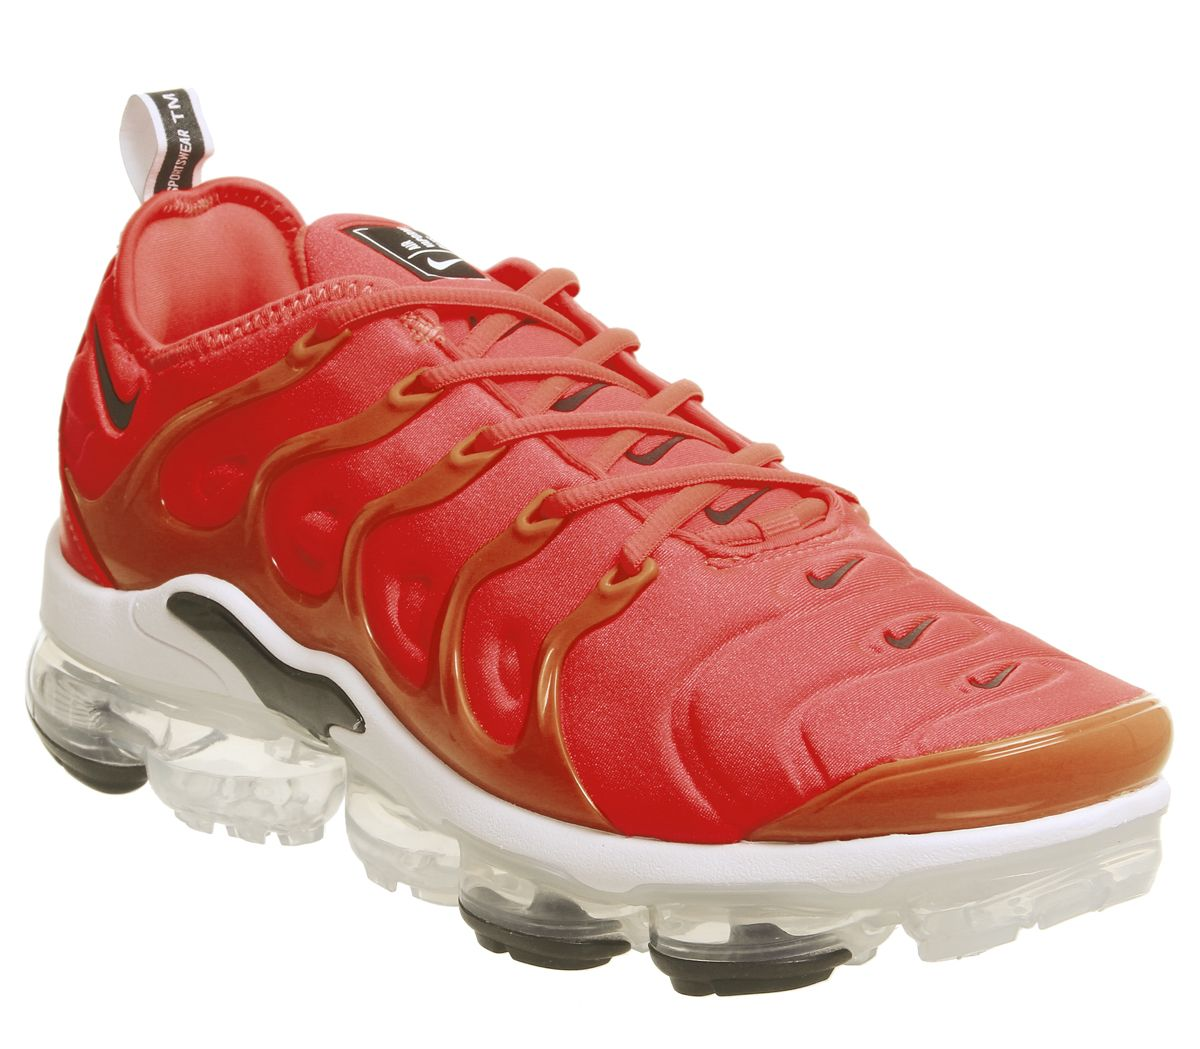 7cd147c3d22 Nike Vapormax Air Vapormax Plus Trainers Bright Crimson Black White ...